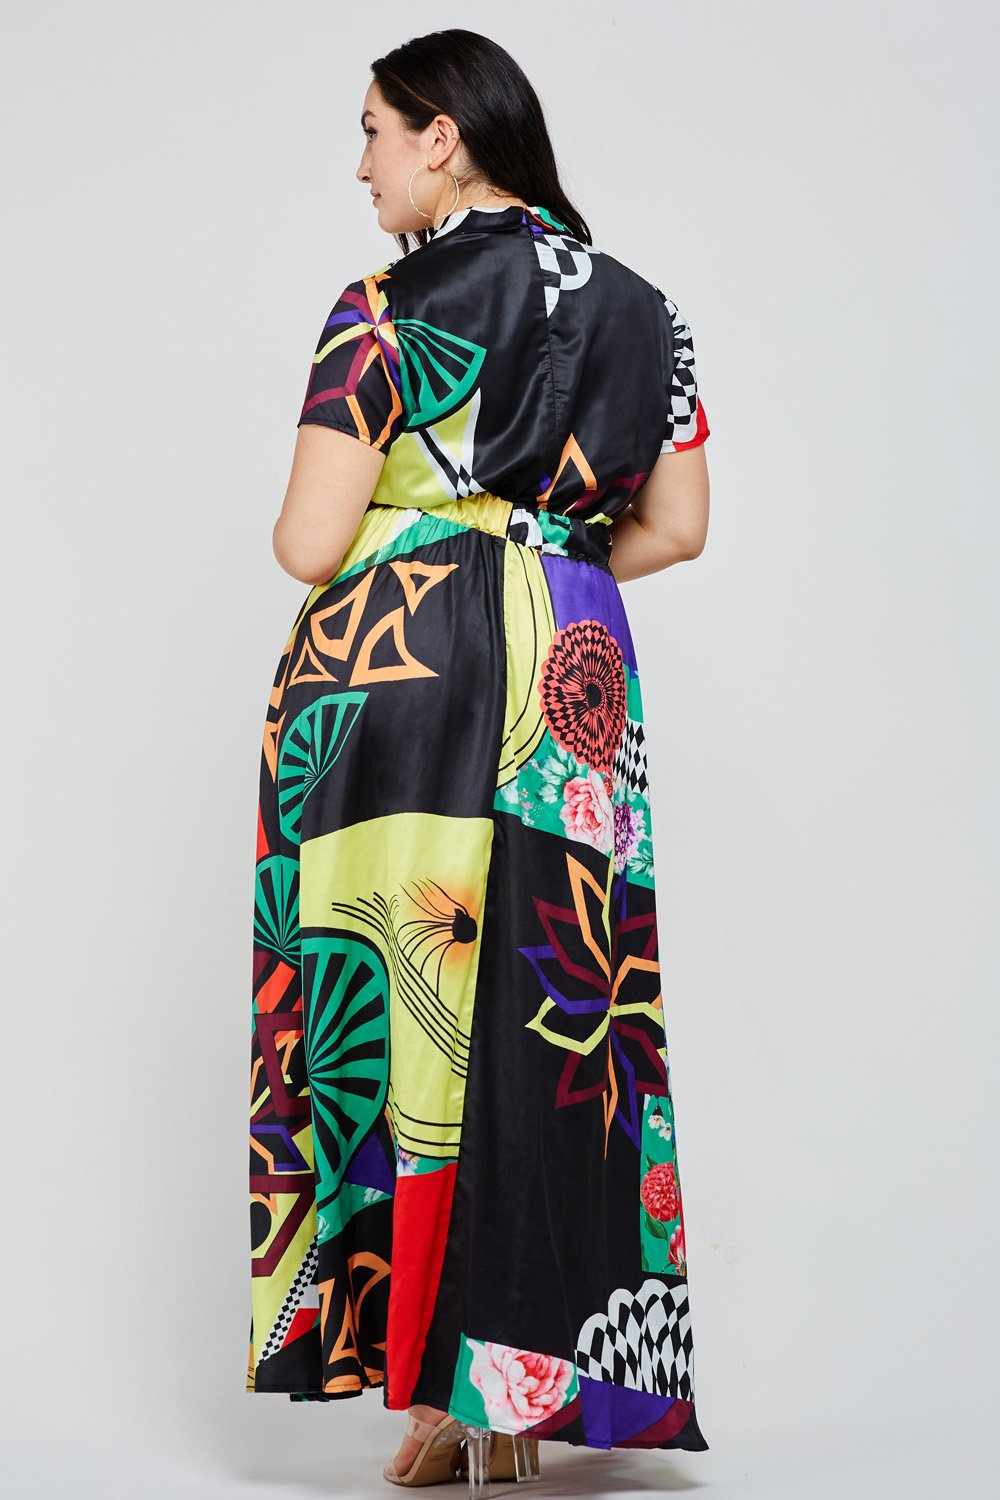 Multi - Color Abstract Print Boho Black Maxi Dress - STEVEN WICK